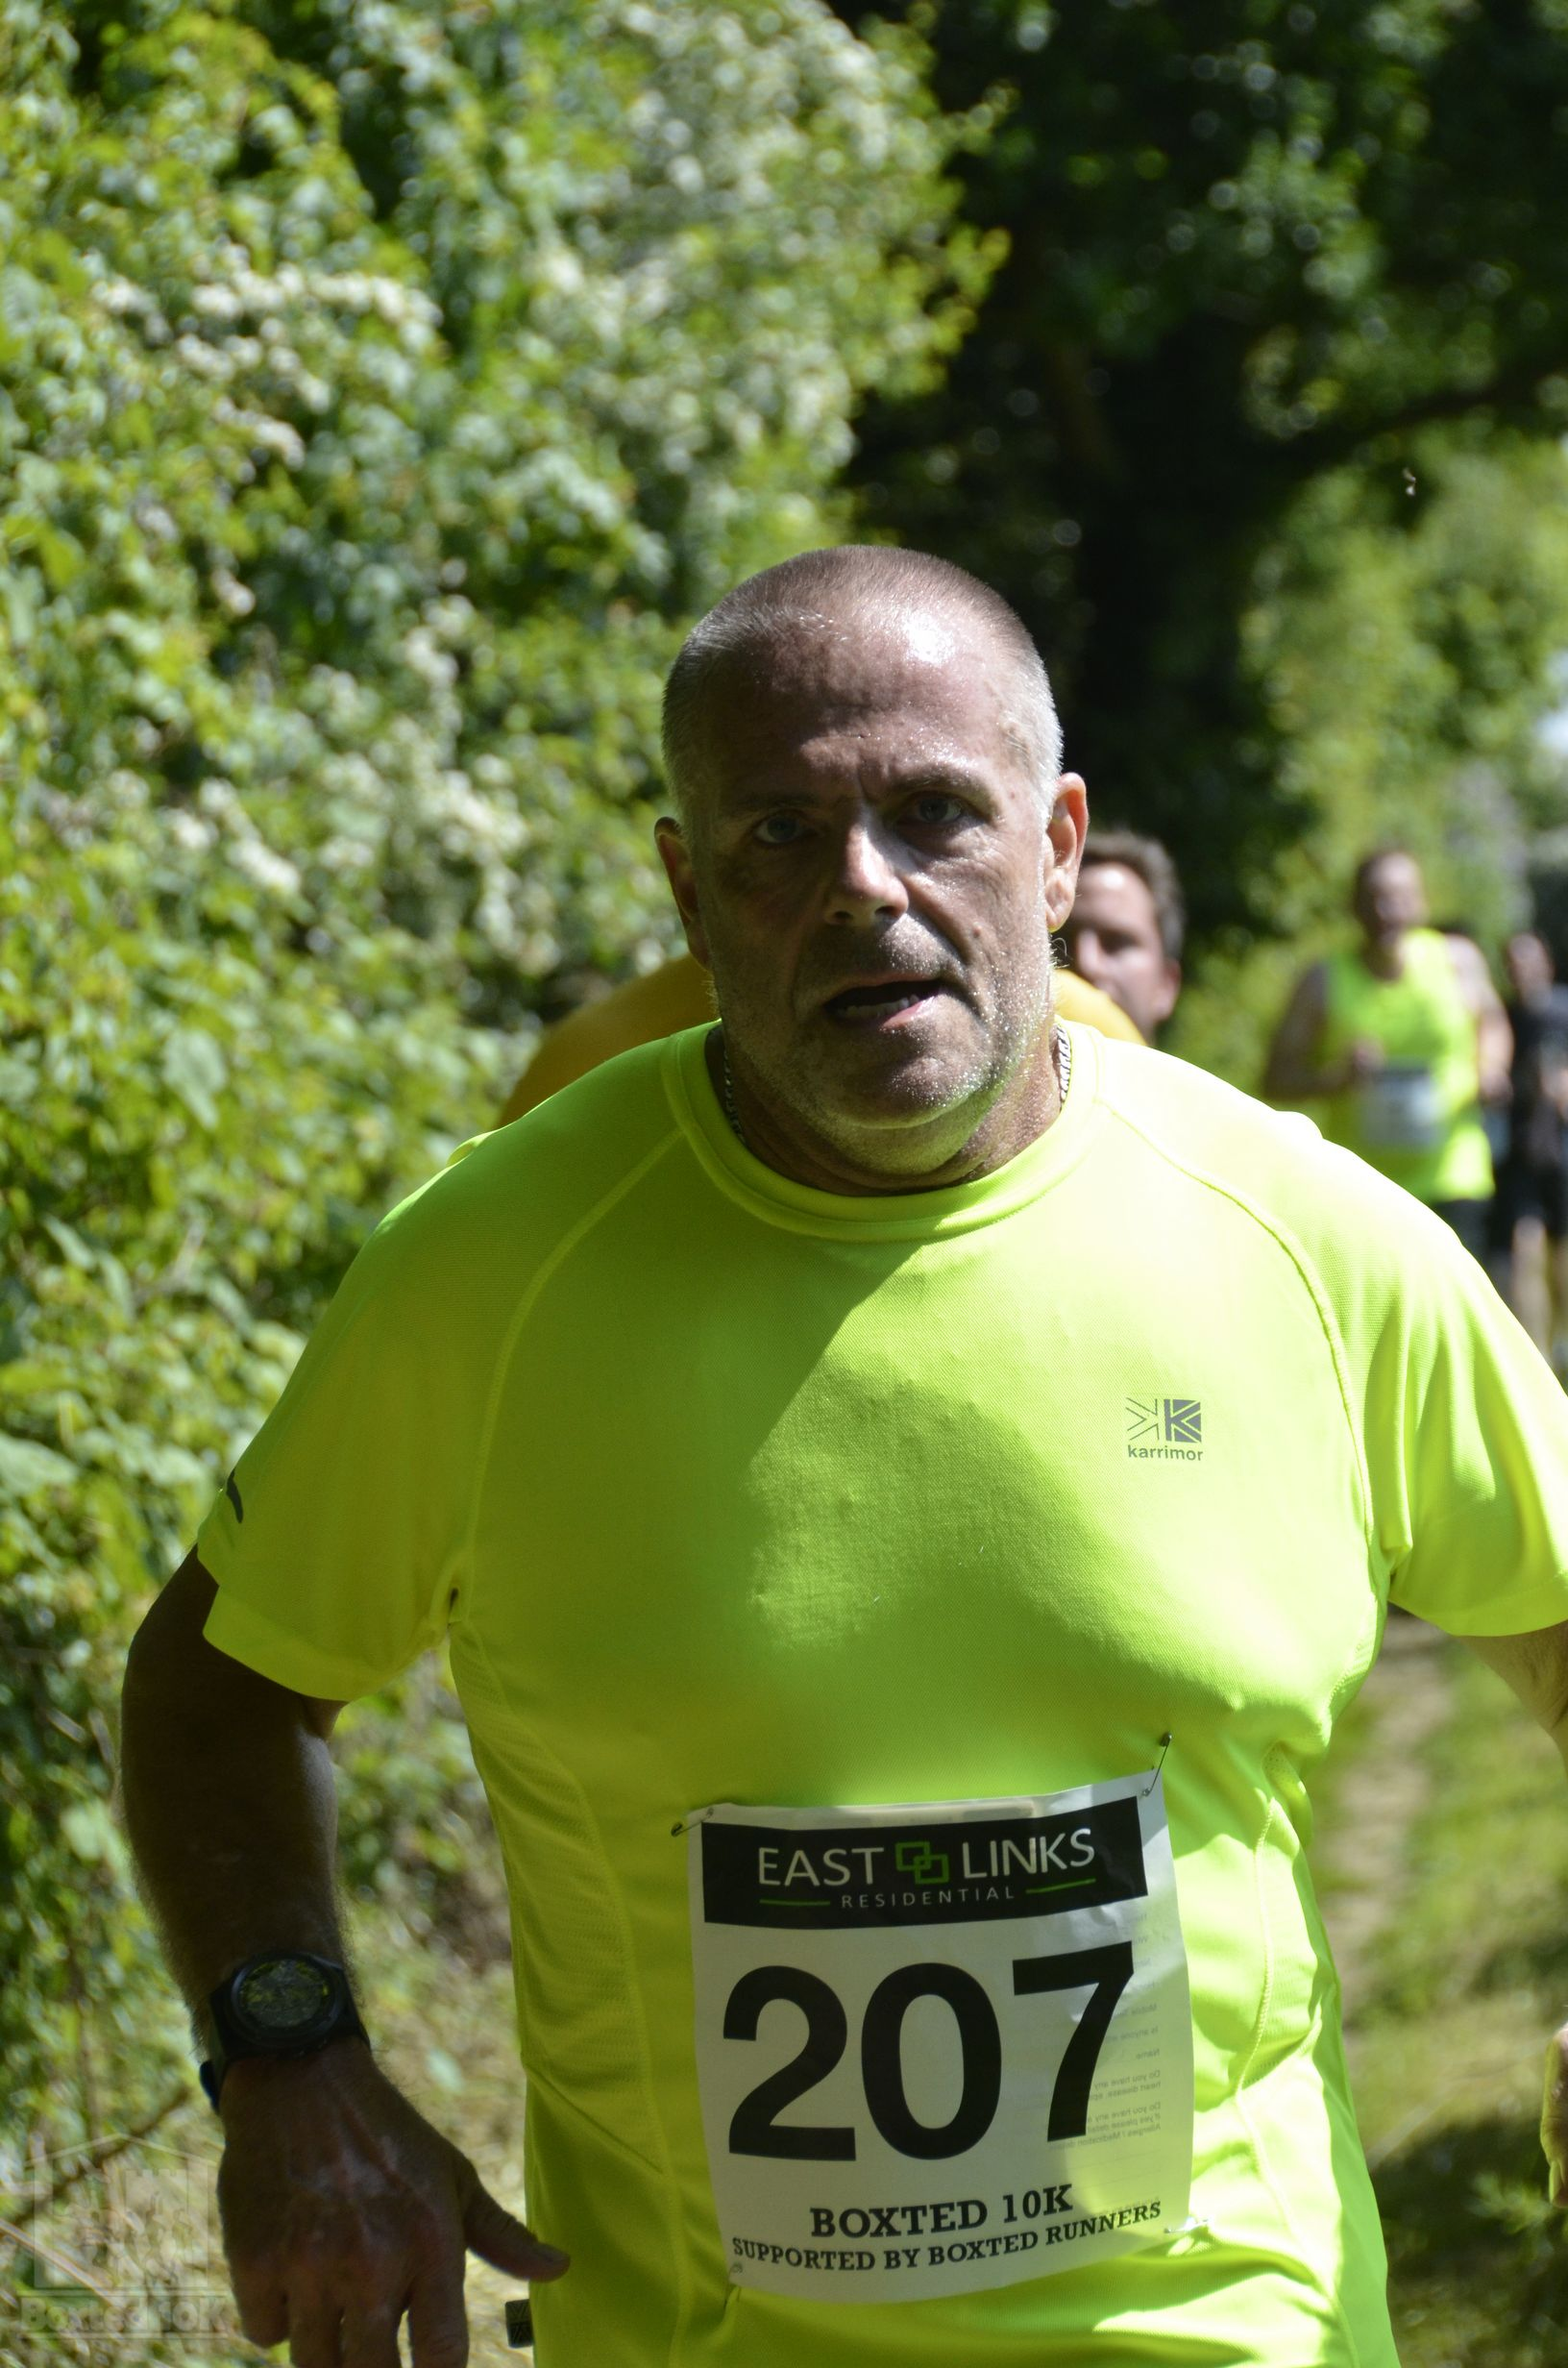 Boxted10k-00283